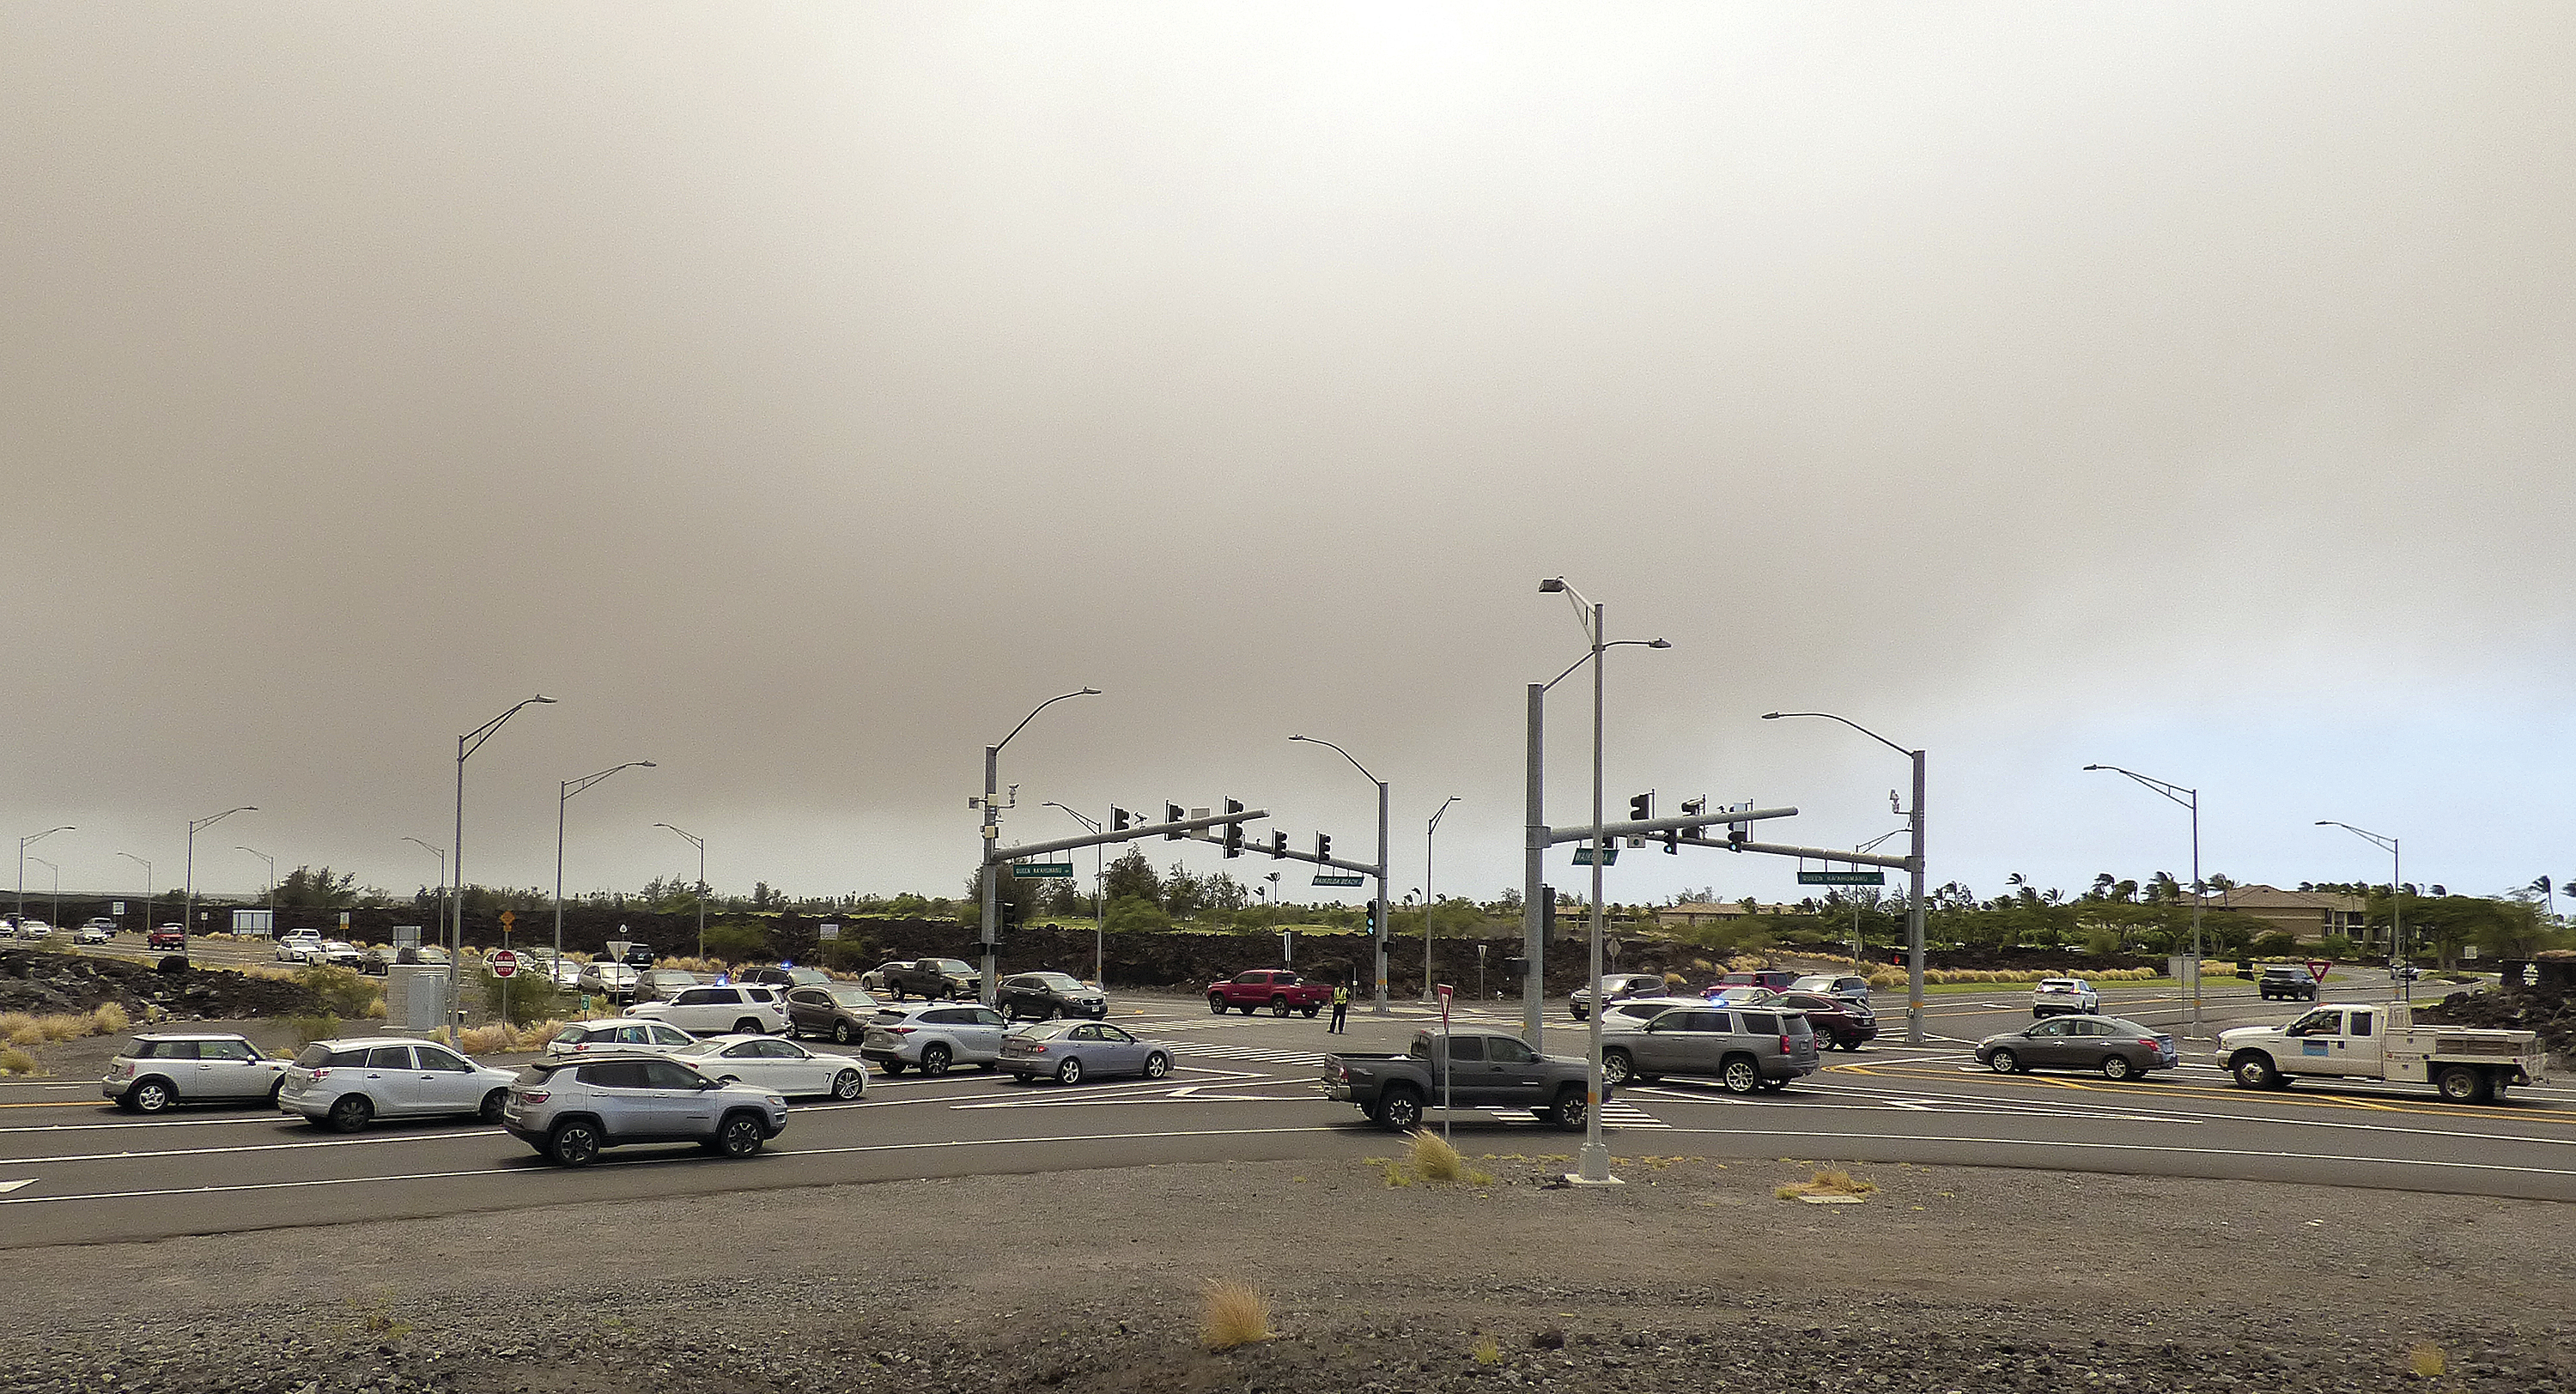 Authorities have lifted evacuation orders but warned they could be reinstated at any time and that people should be ready to go.